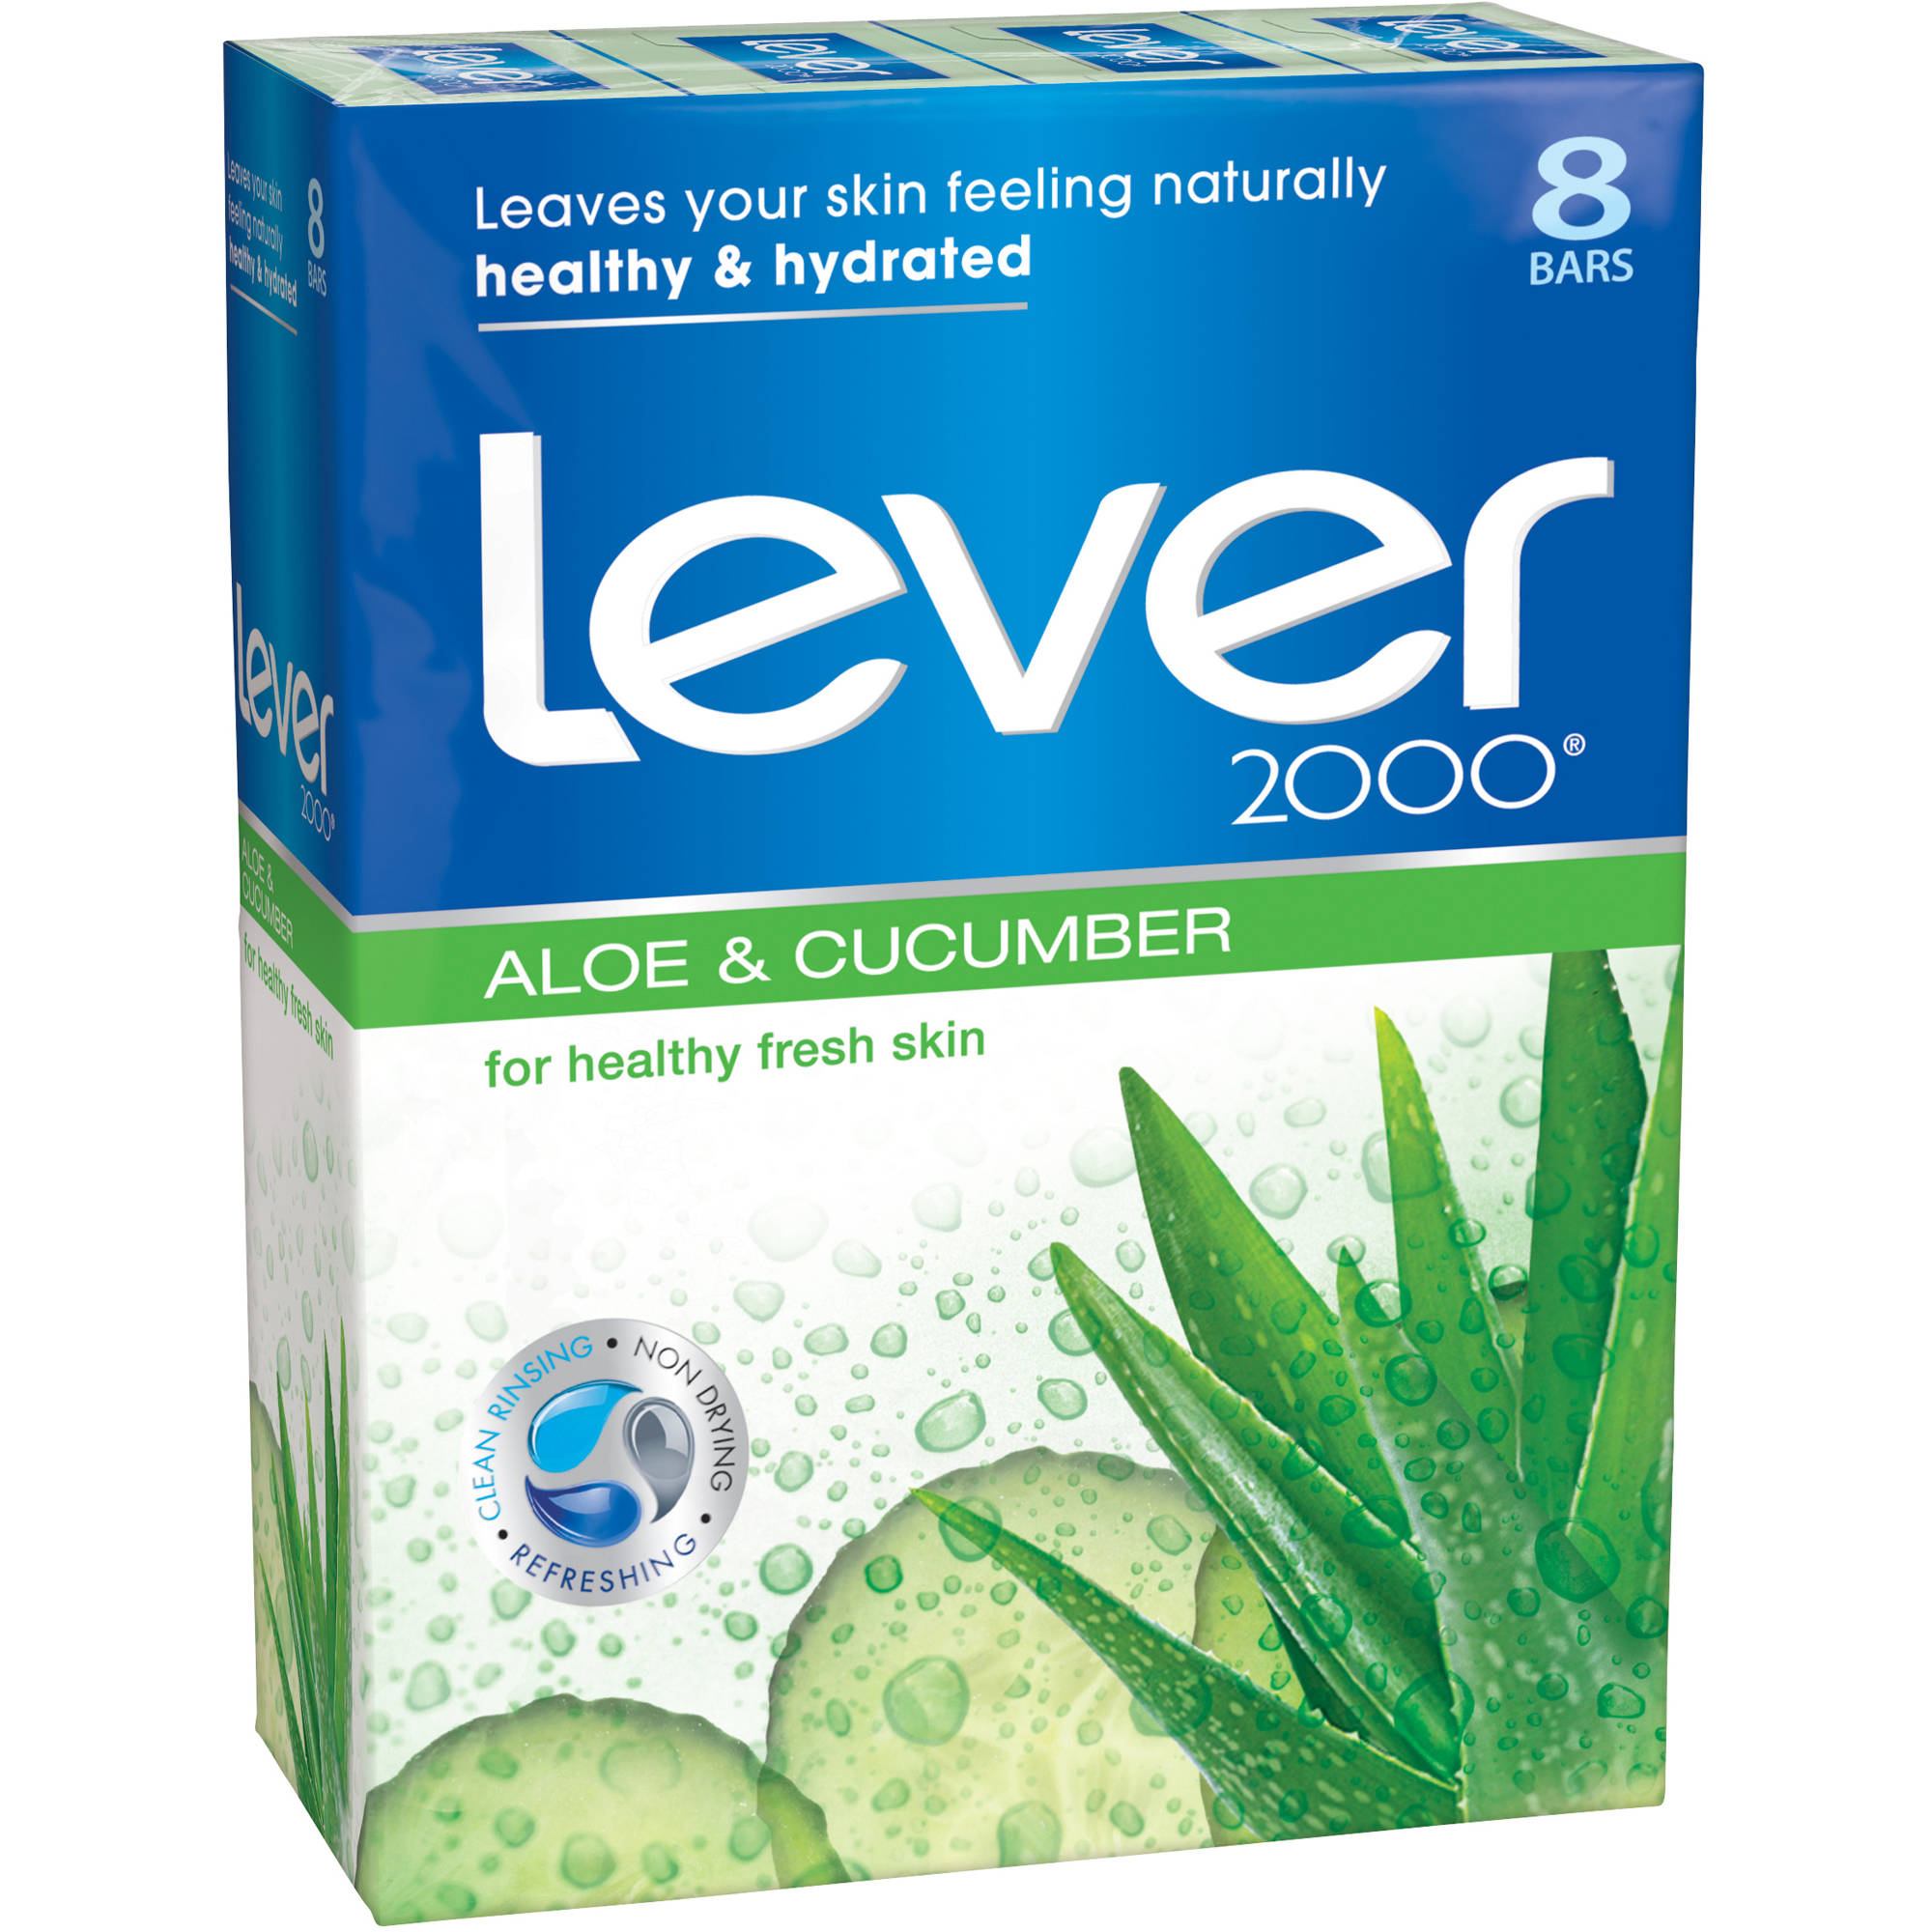 Lever 2000 Aloe and Cucumber Bar Soap, 4 oz, 8 Bar